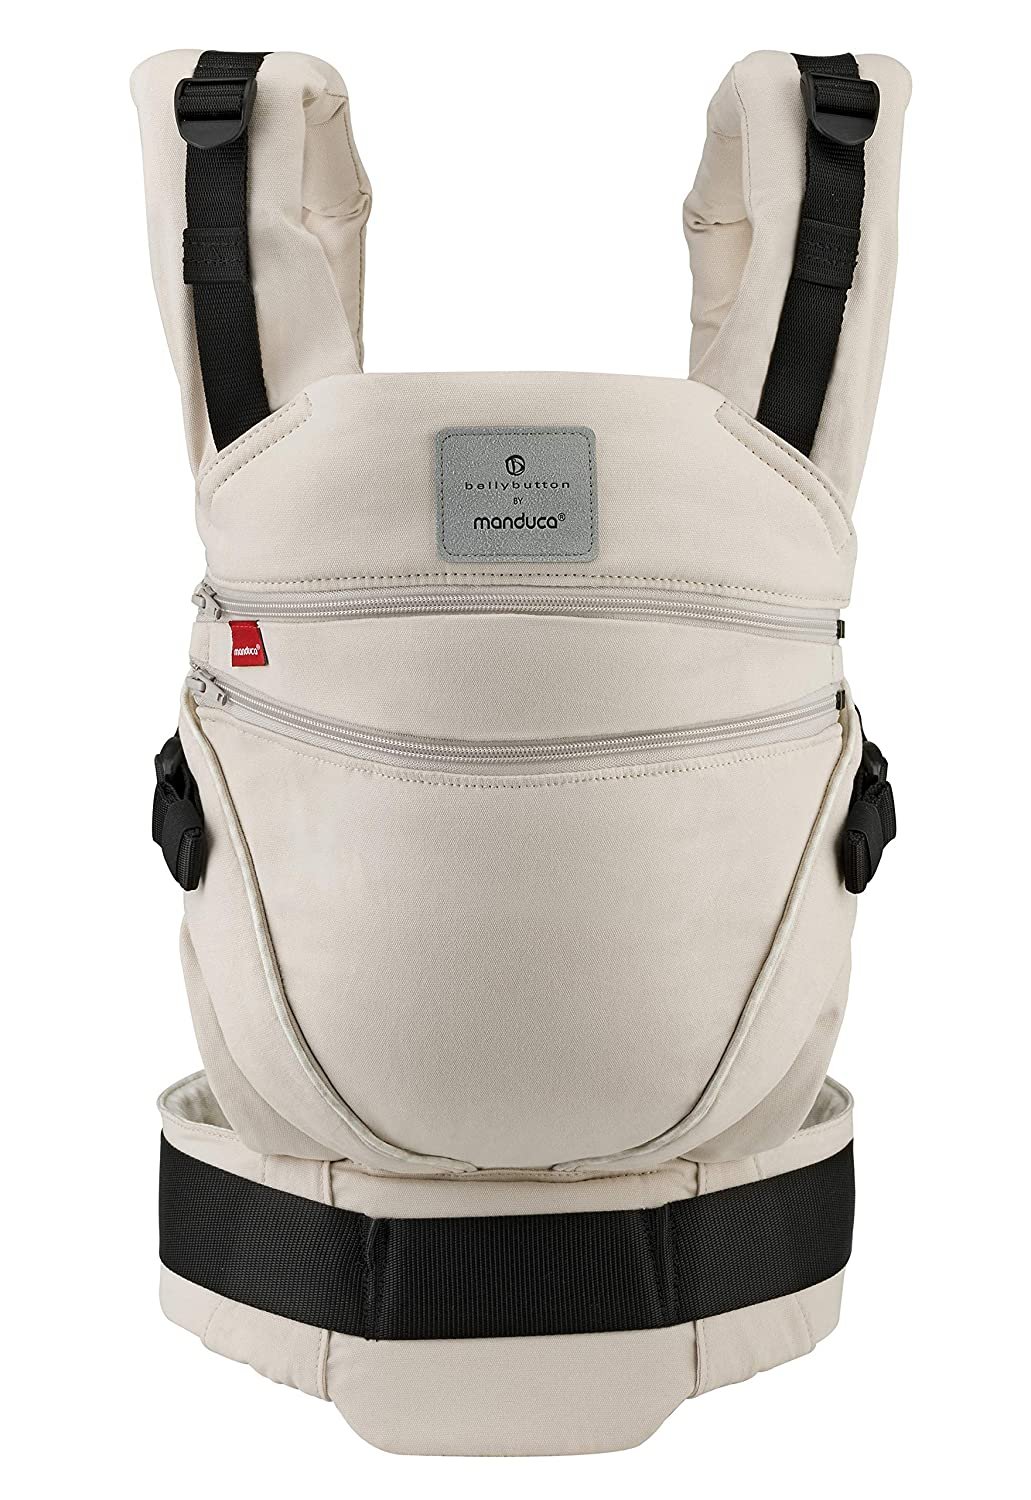 Adapts to Babies from Newborn to Toddler Front Organic Cotton No Infant Insert Needed Hip /& Back Carry 3.5-20kg manduca XT Limited Edition  Butterfly Grey  Baby Carrier with Adjustable Seat